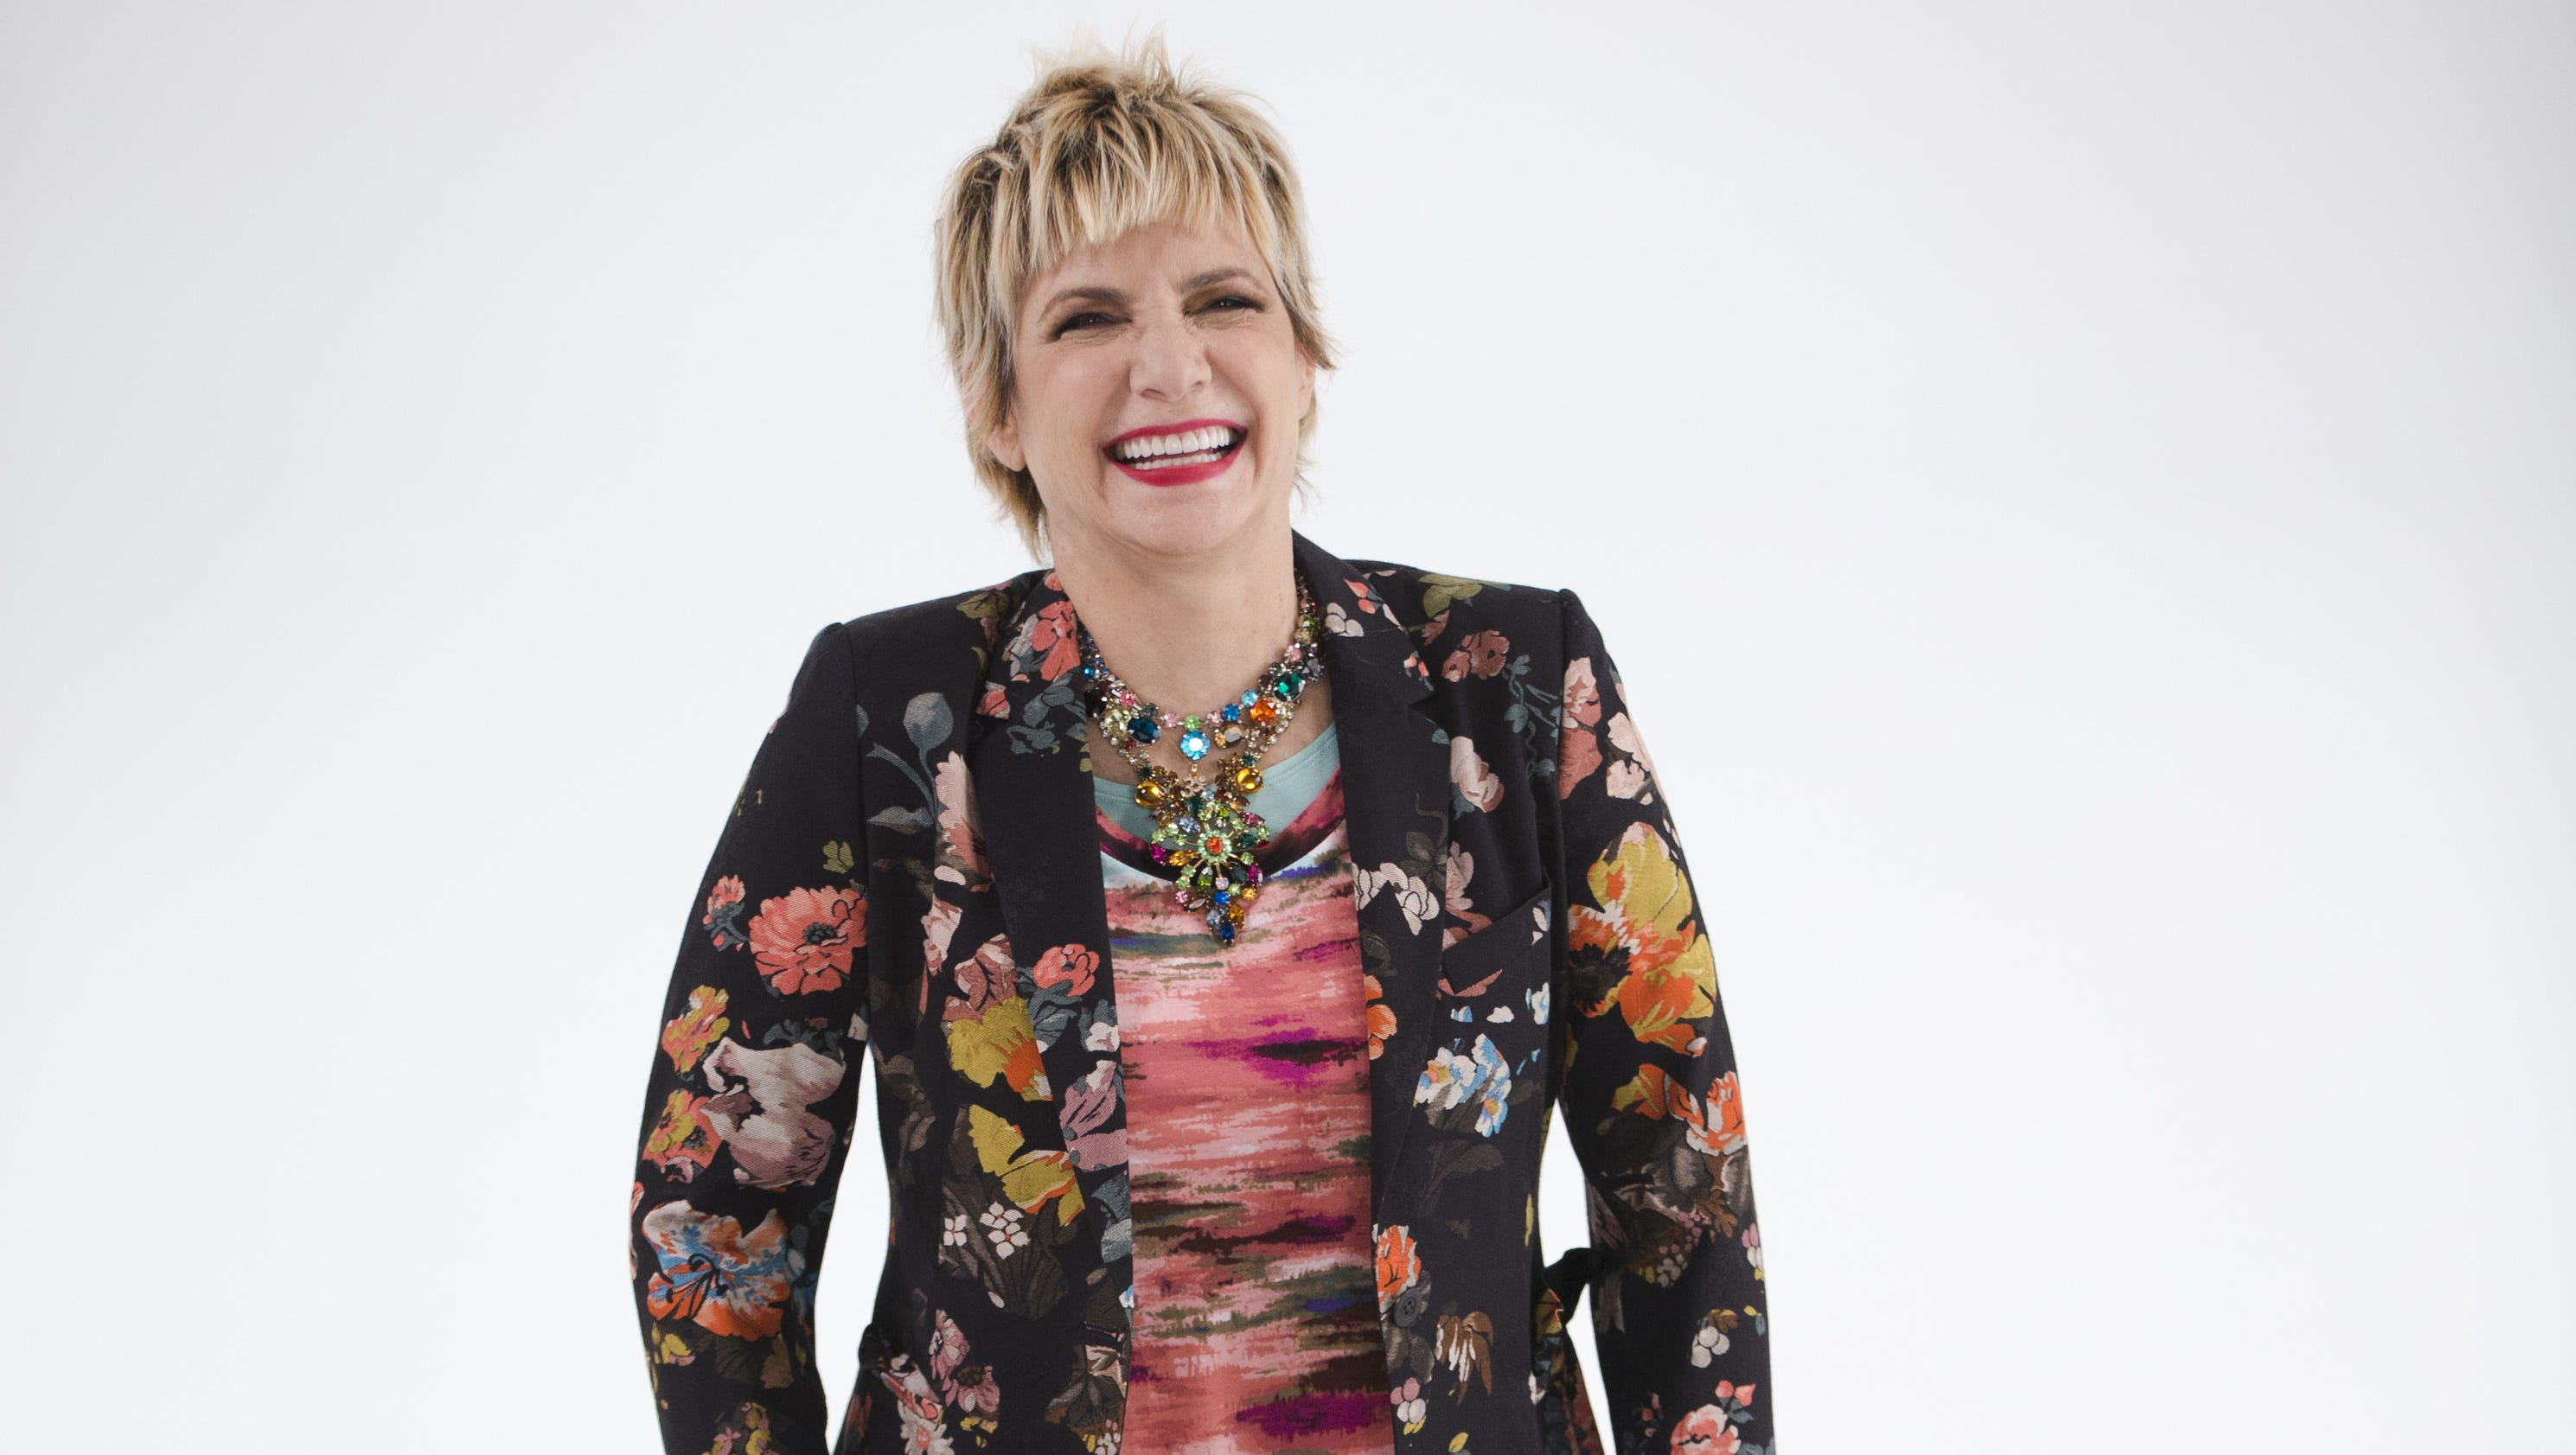 High Fashion Stylist Turns To All Women With Qvc Line